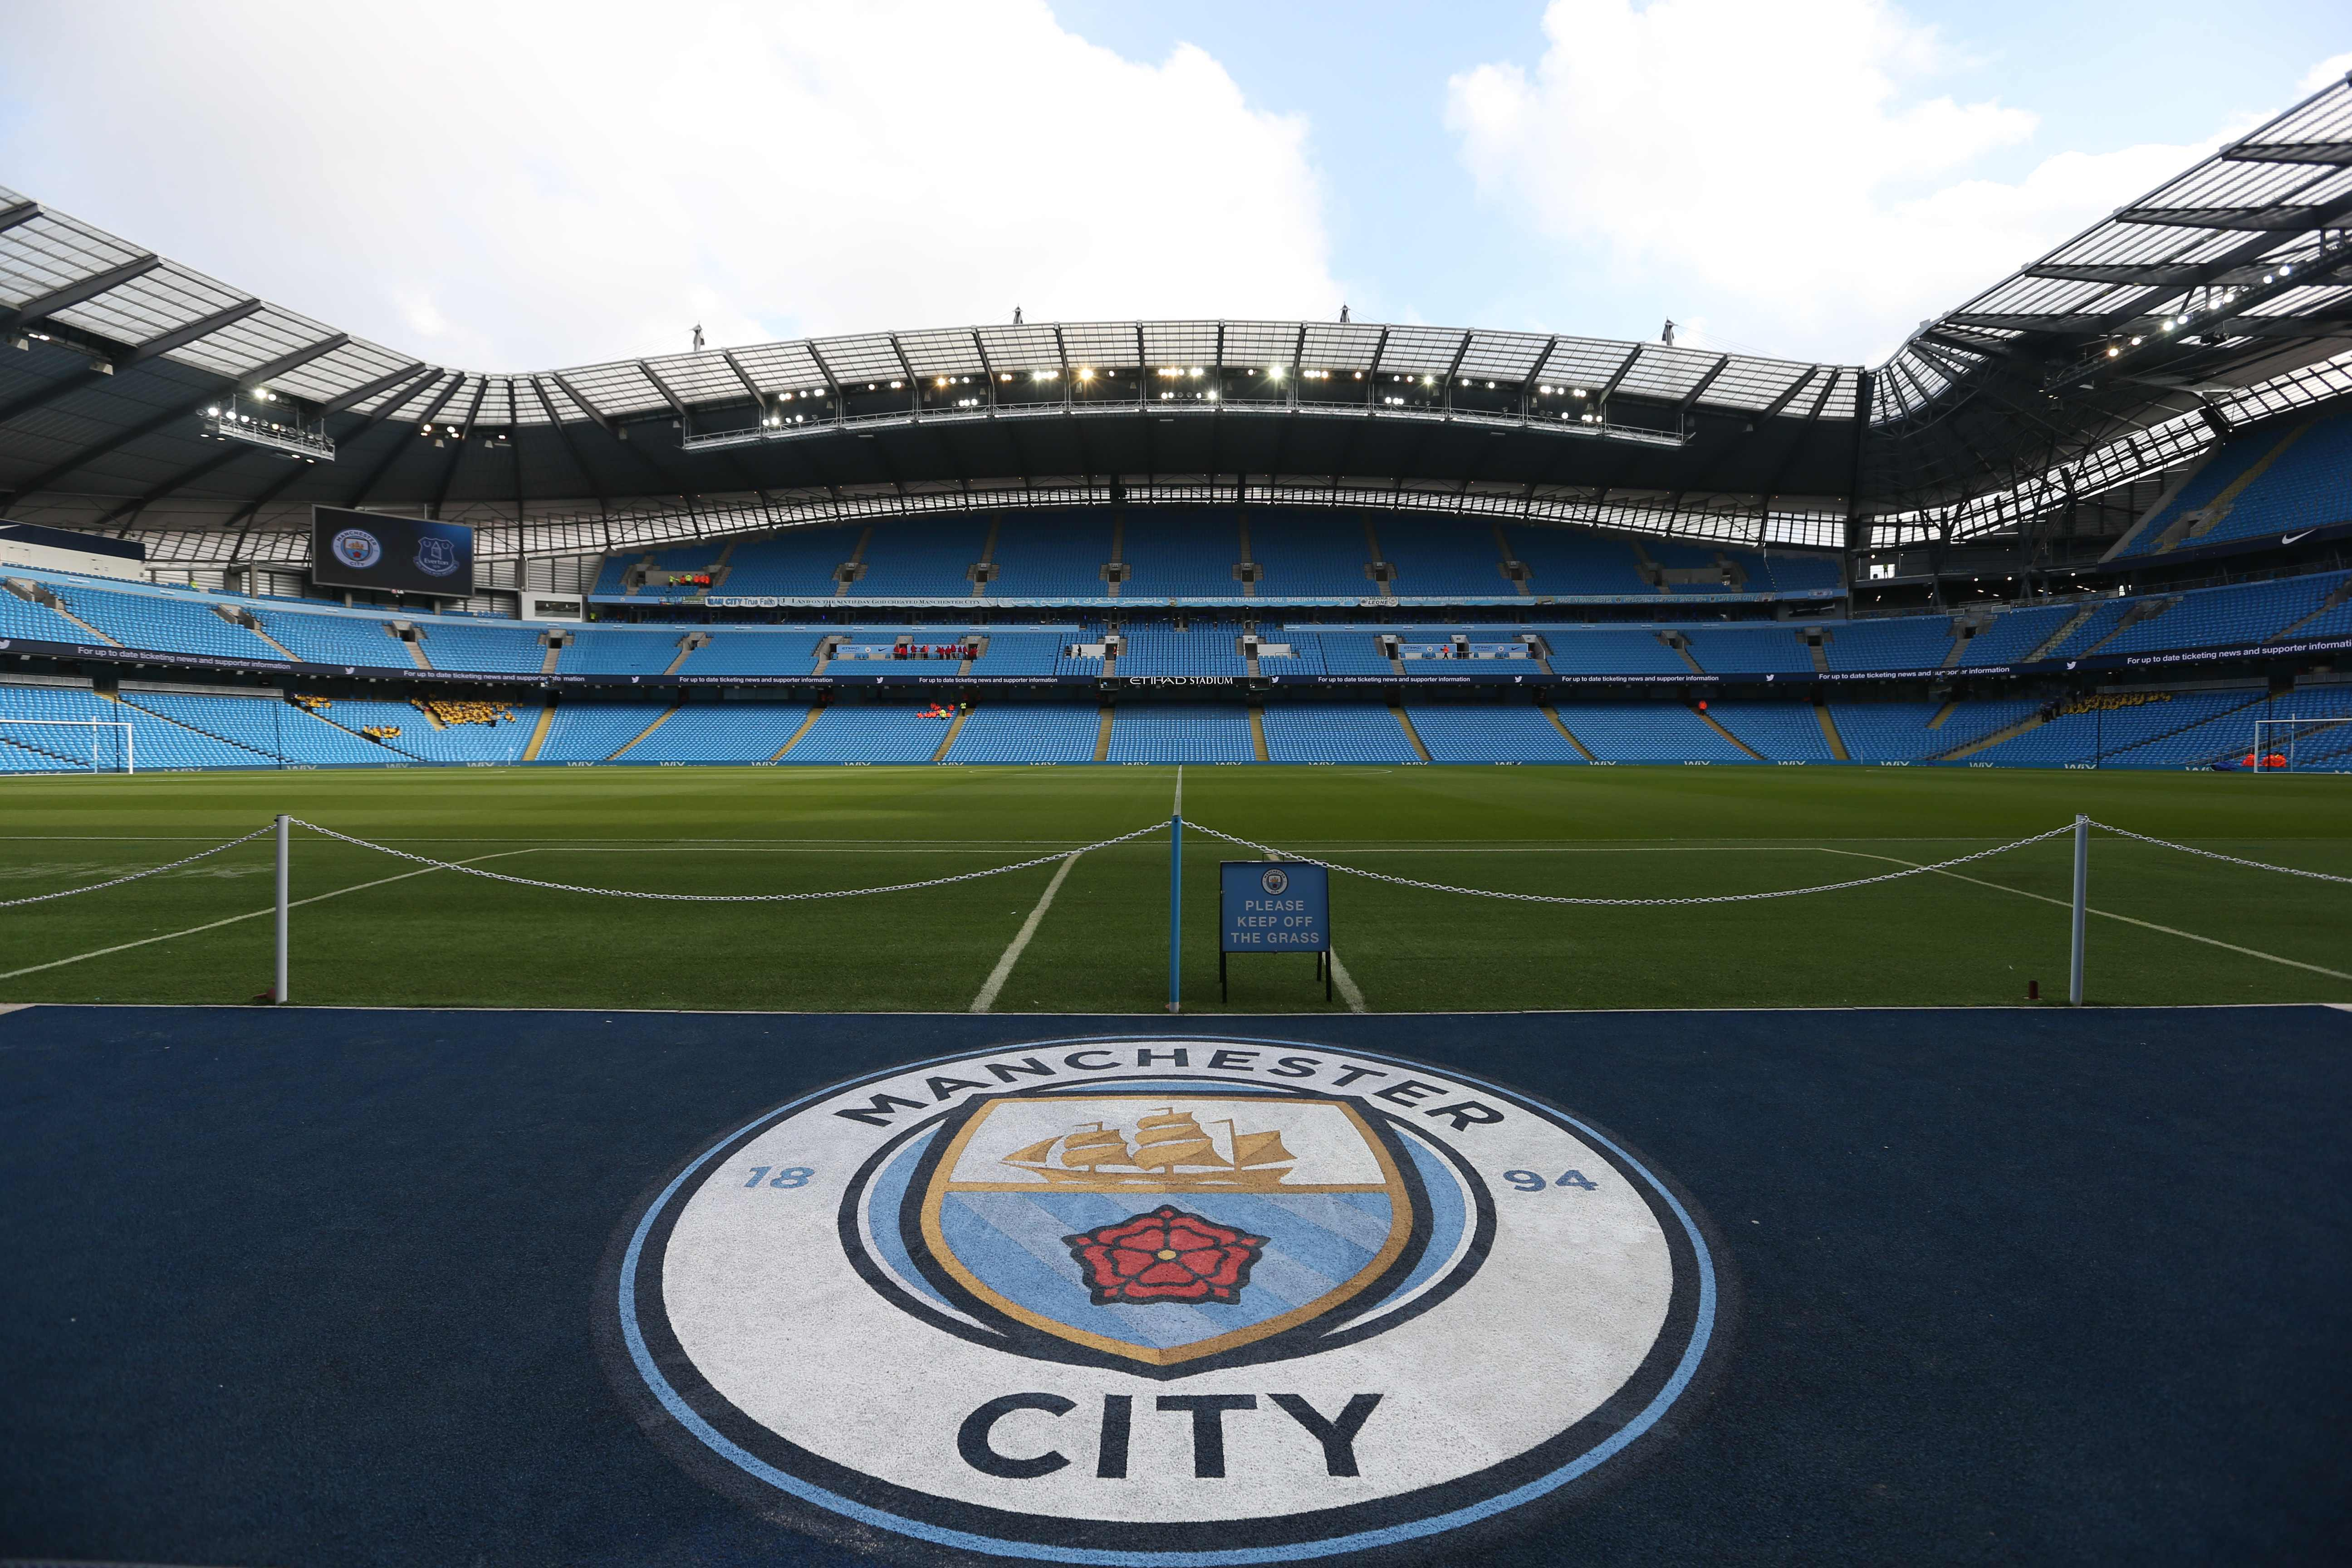 Manchester City community mourns the death of 17-year-old youth player Jeremy Wisten